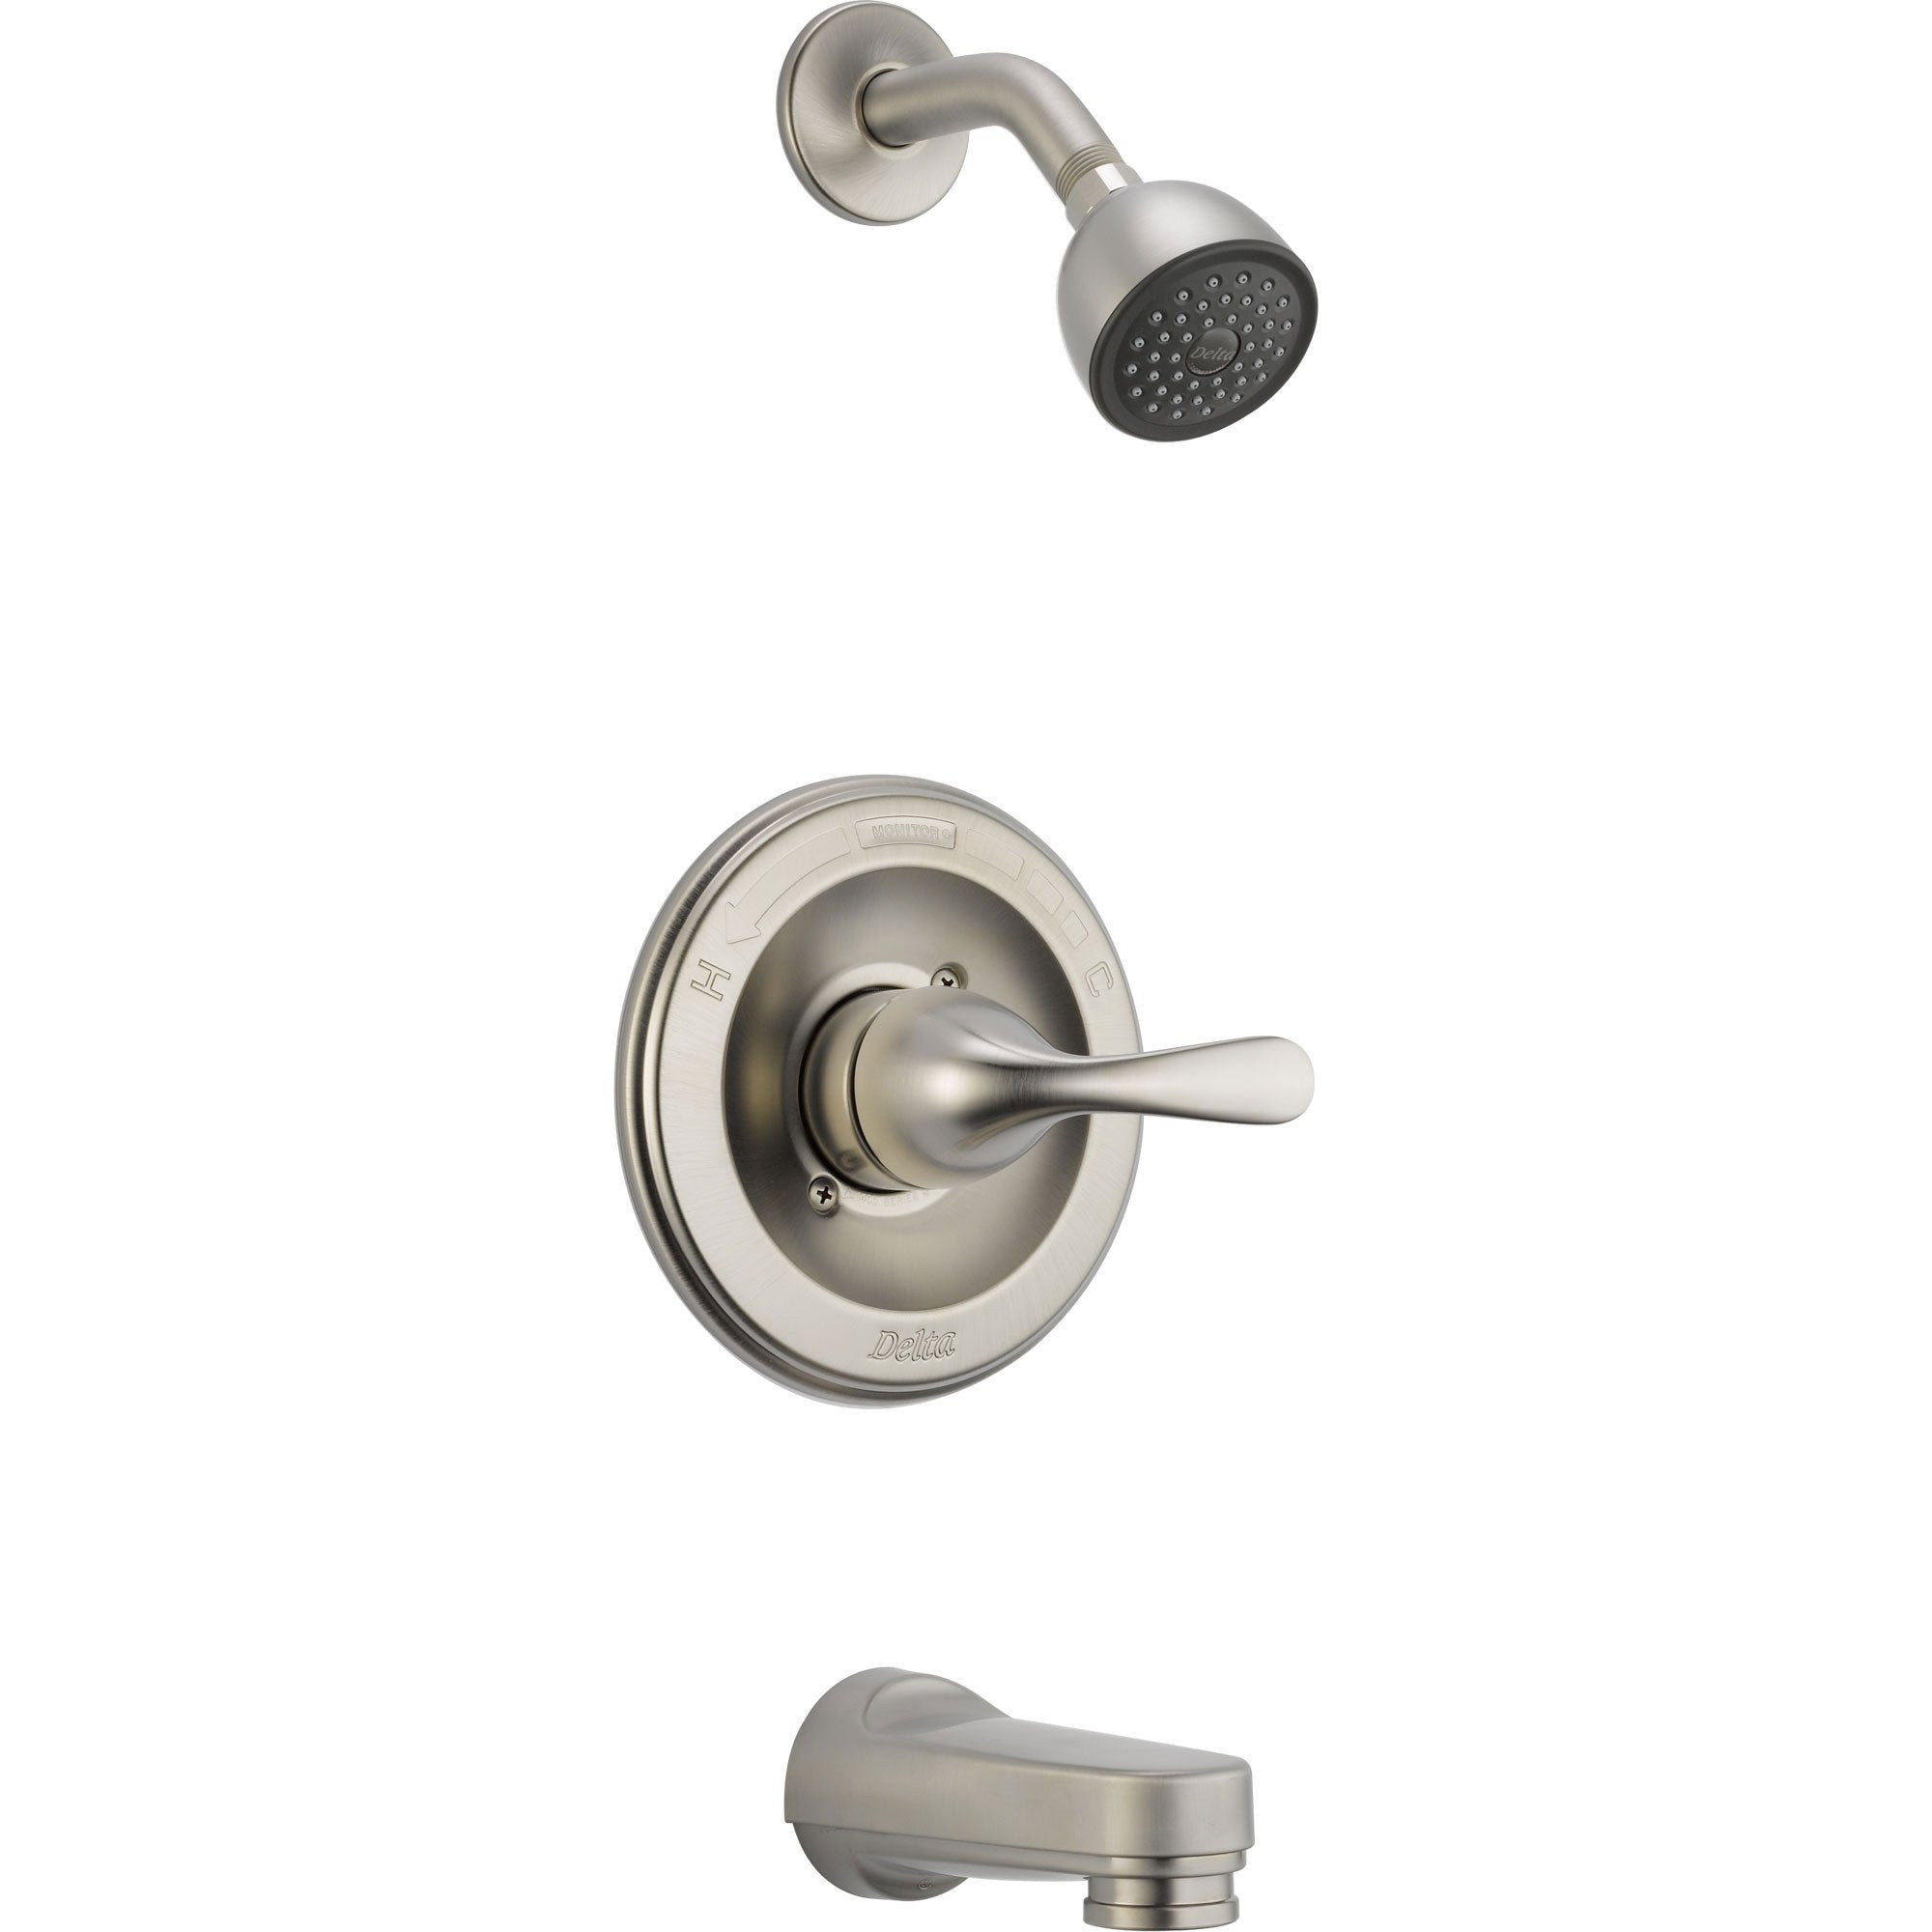 Delta Classic Stainless Steel Finish Tub and Shower Faucet with Valve D236V